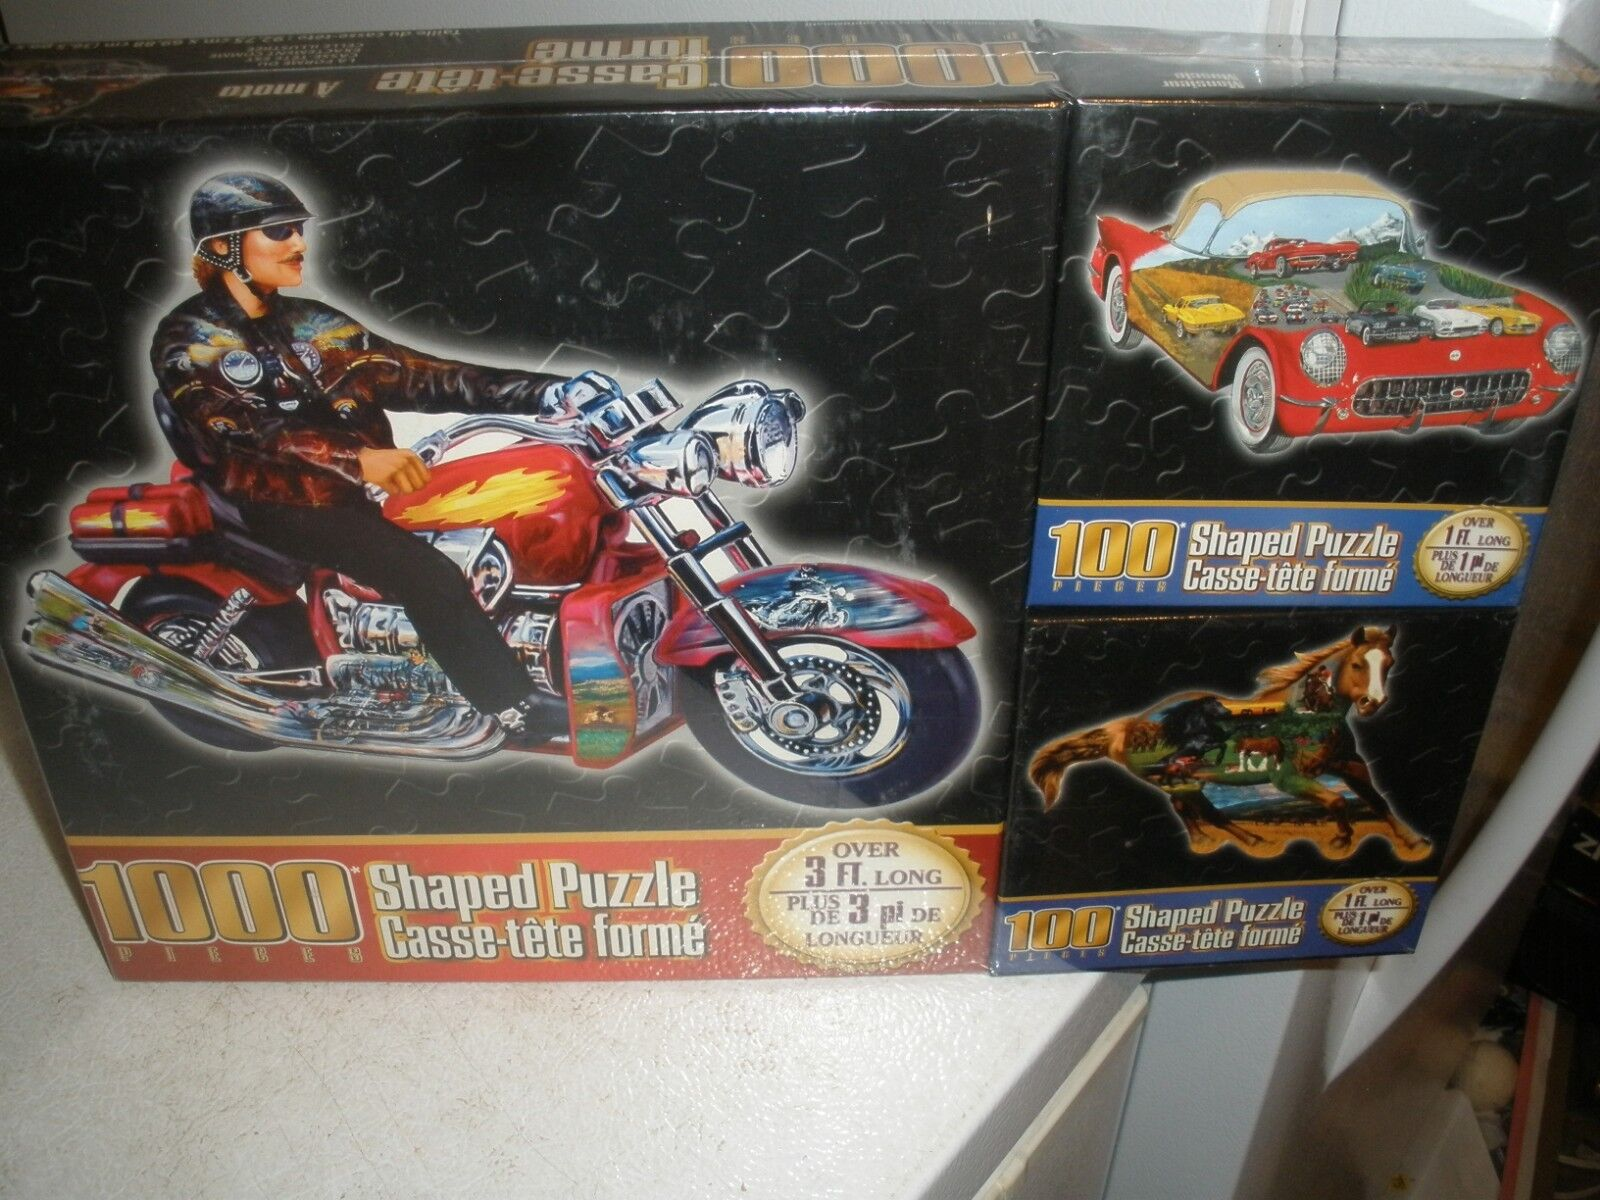 NEW Set of 3 Sure-Lox Shaped Puzzles 1000 Motorcycle, 100 Car, 100 Horse